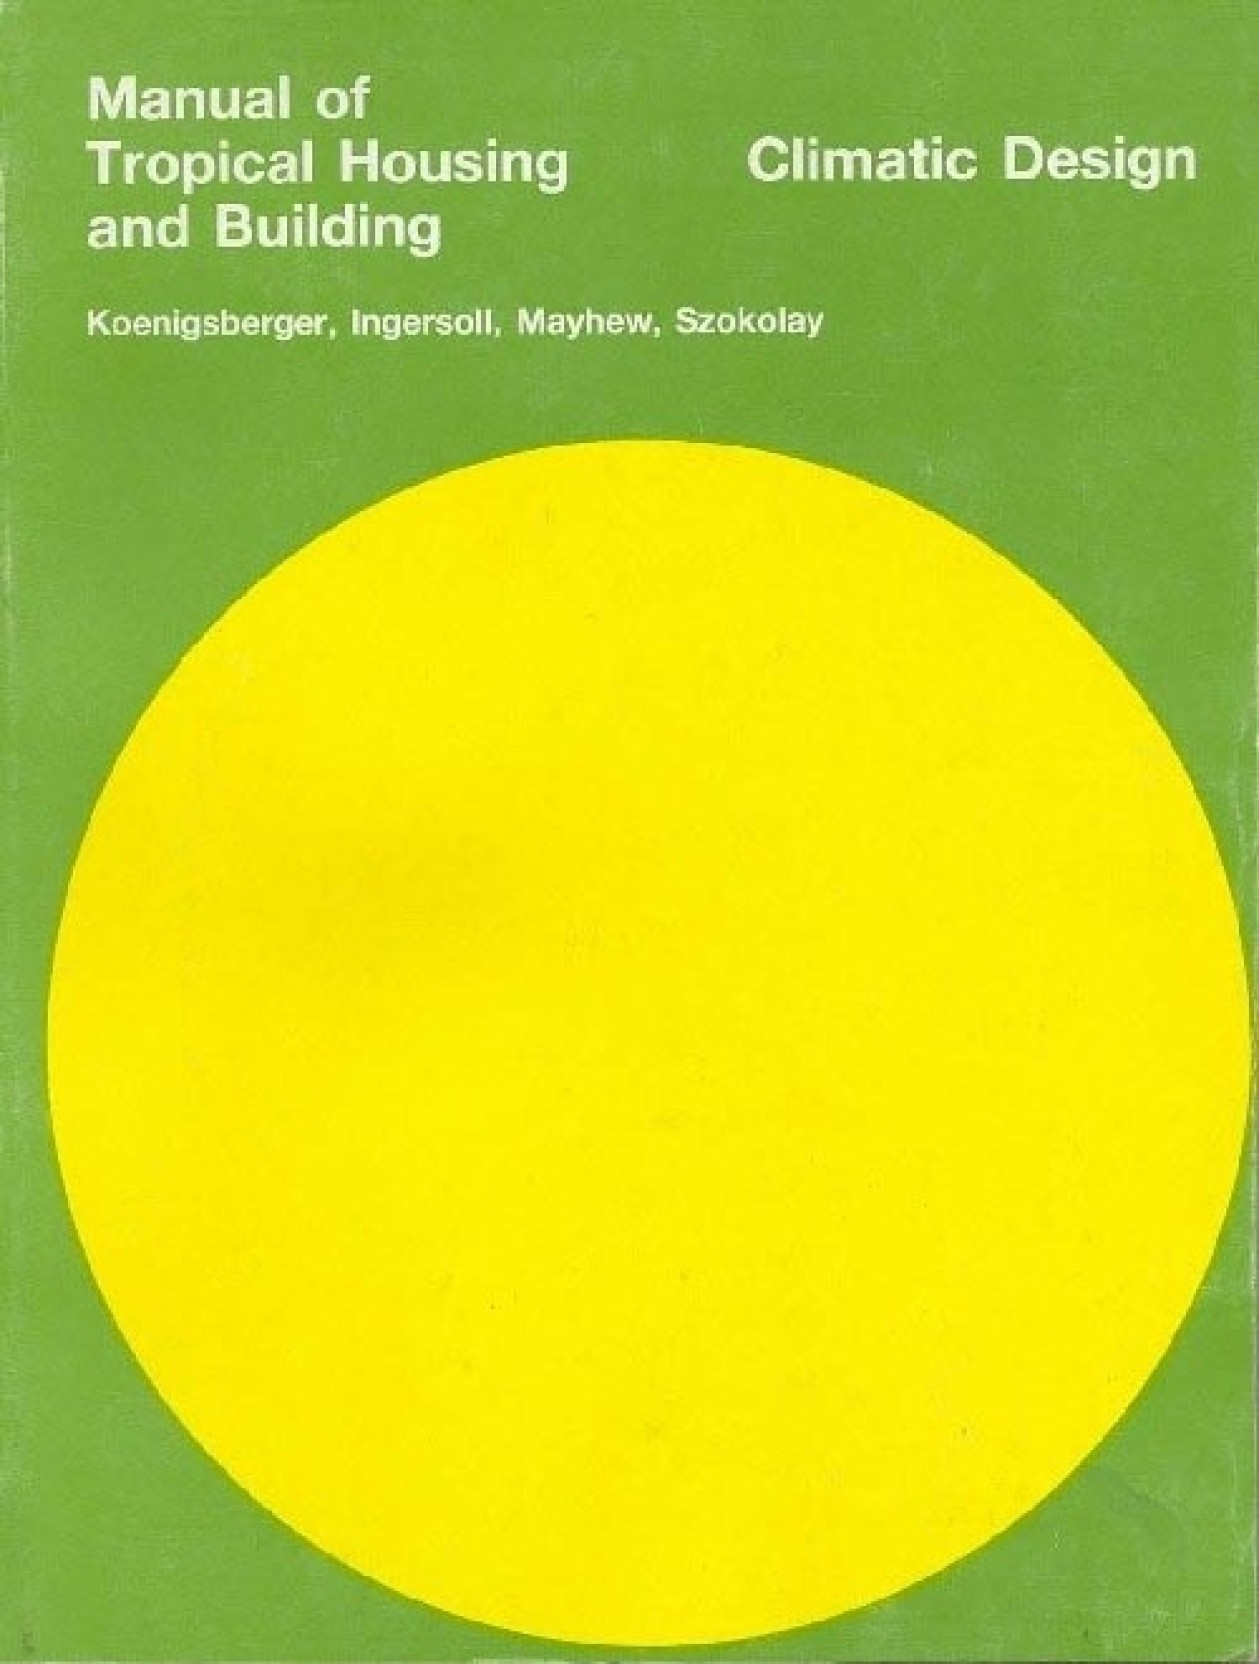 Manual Of Tropical Housing & Building Climatic Design PB 01 Edition. Share